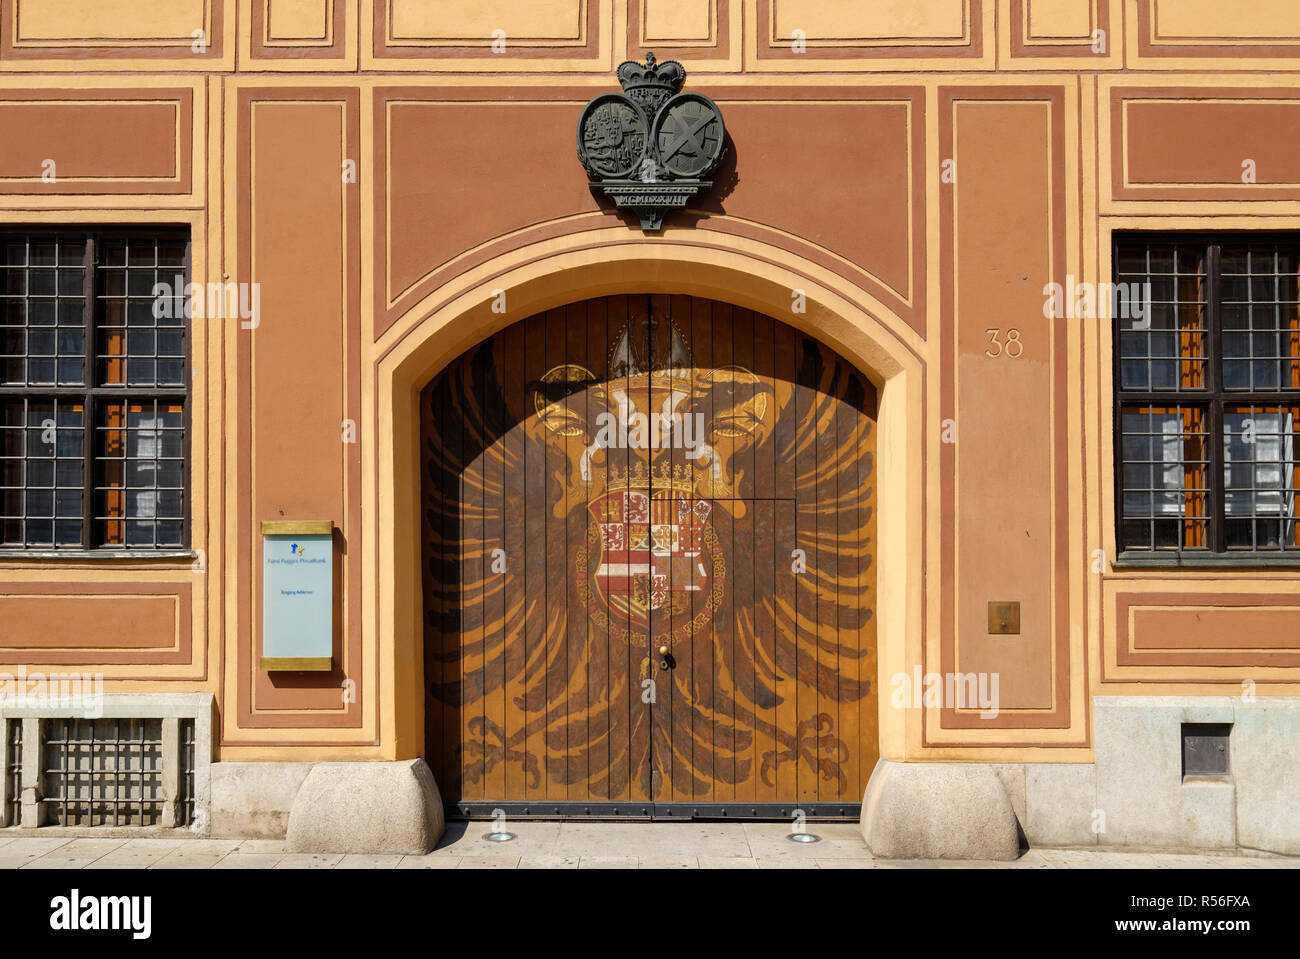 Adlertor, City Palace of the Fuggers, Fugger Houses, Maximilianstraße, Augsburg, Swabia, Bavaria, Germany Stock Photo